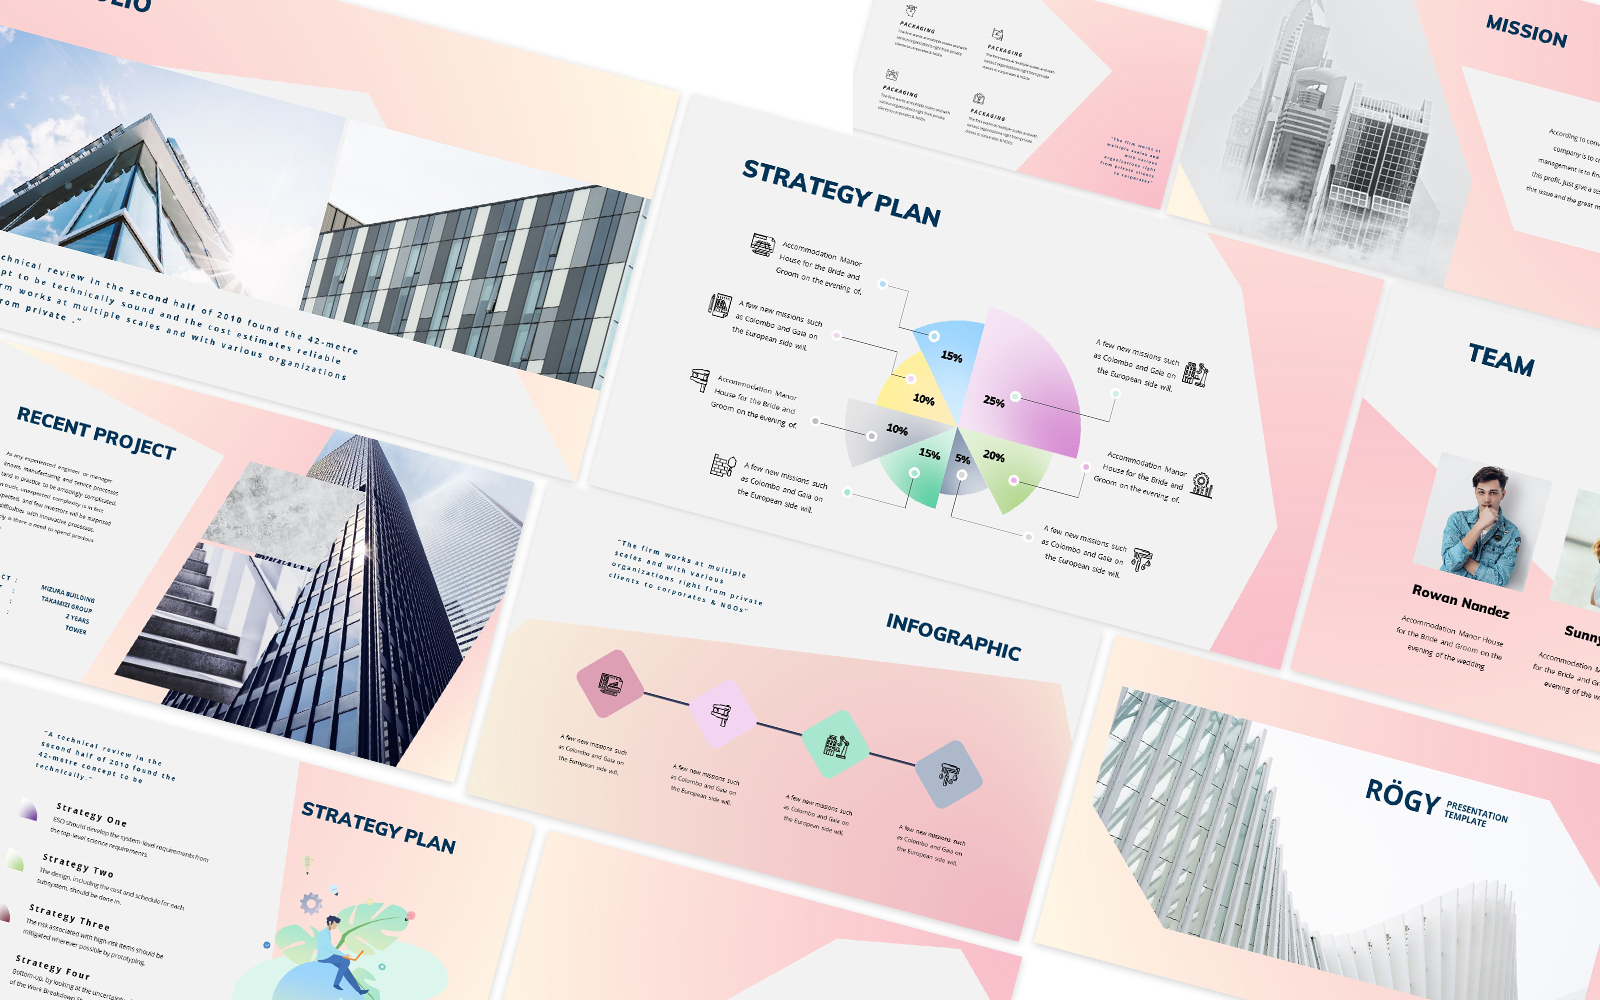 Rogy 2 Powerpoint Template